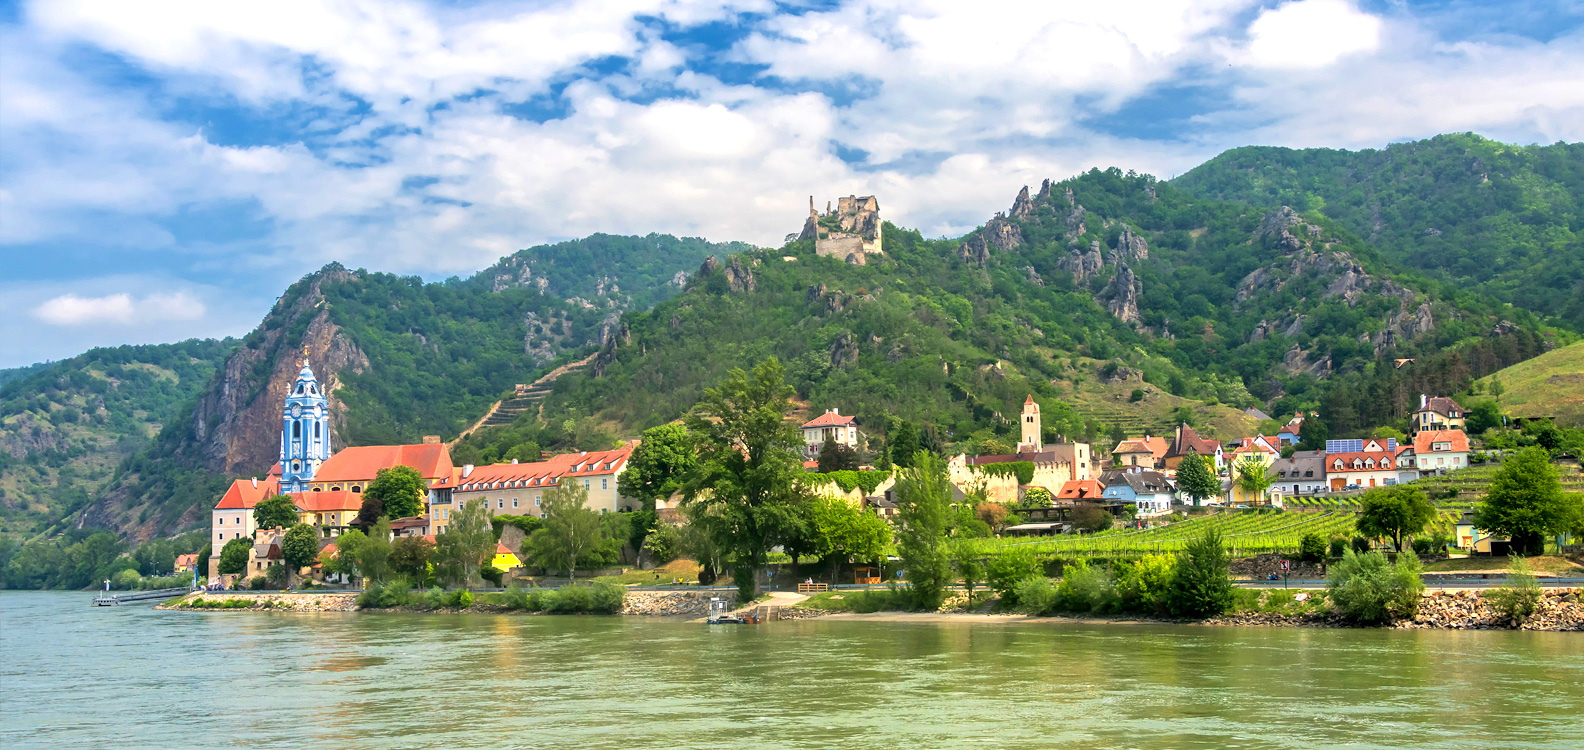 Danube Delights River Cruise